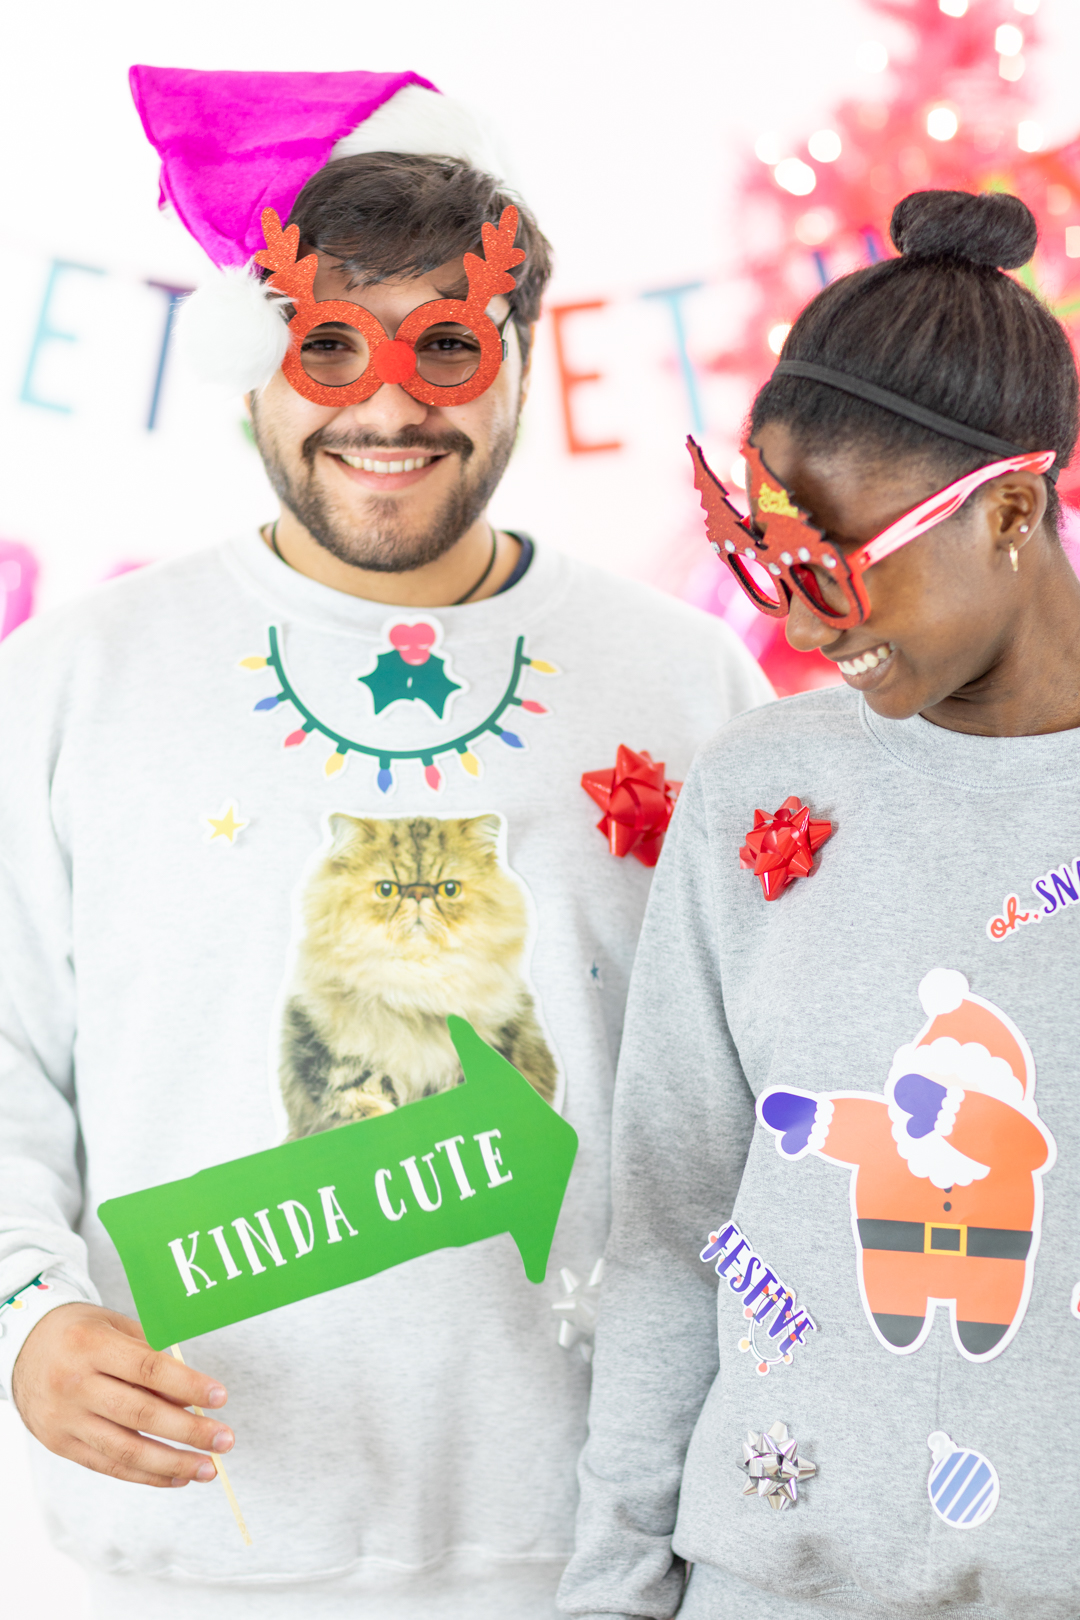 kinda cute - ugly sweater photo prop sign